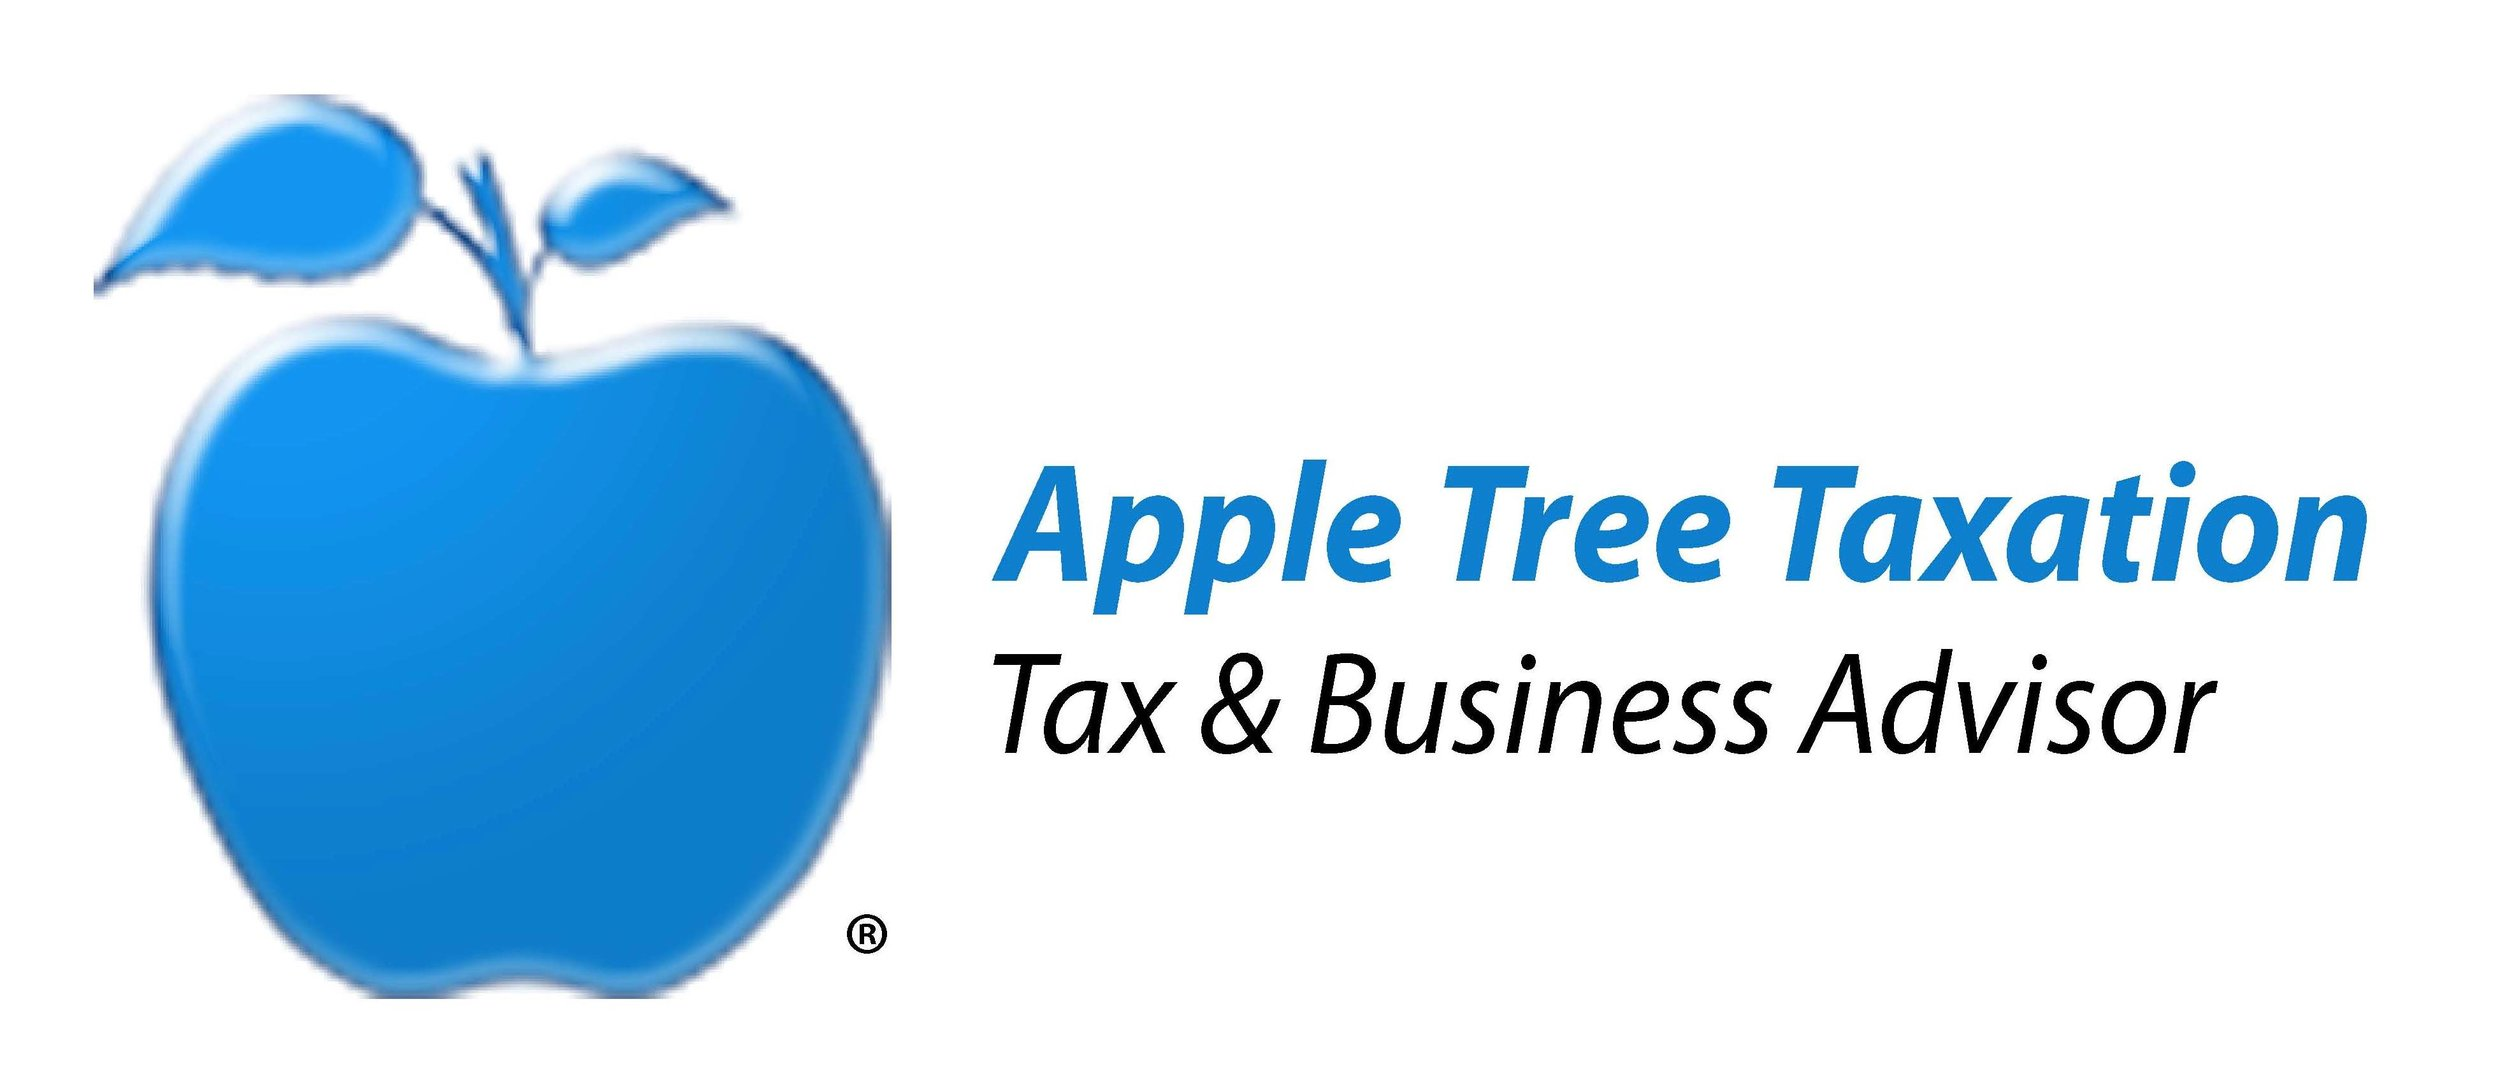 Apple Tree Taxation.jpg